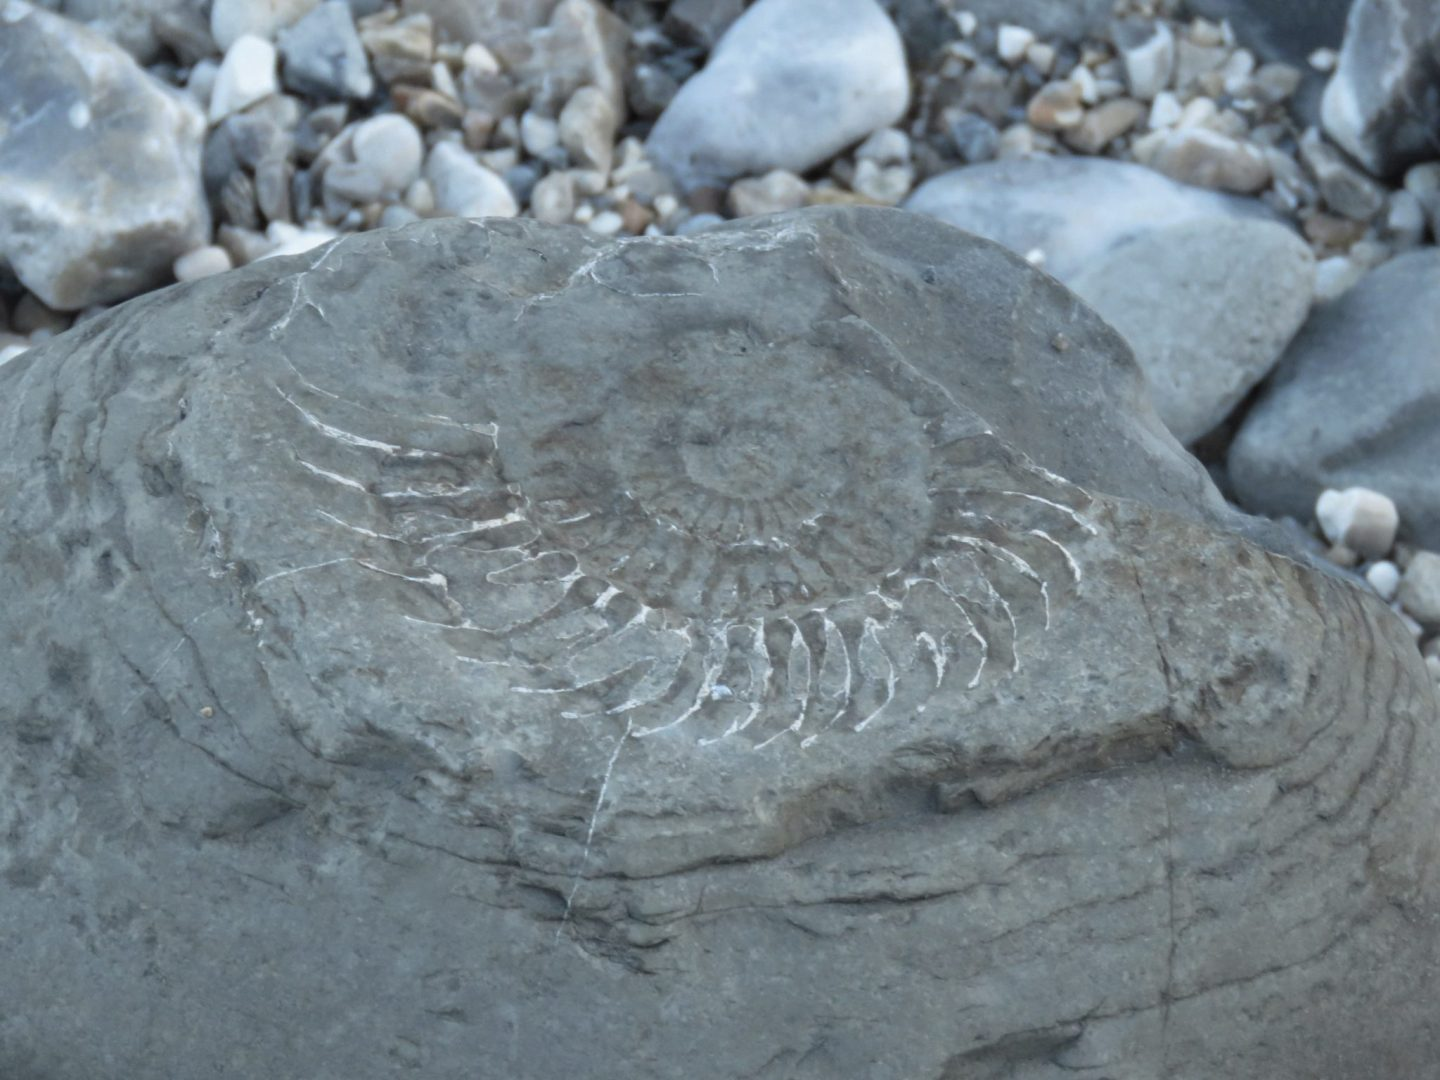 Ammonite on a beach at Lyme Regis, Dorset, England